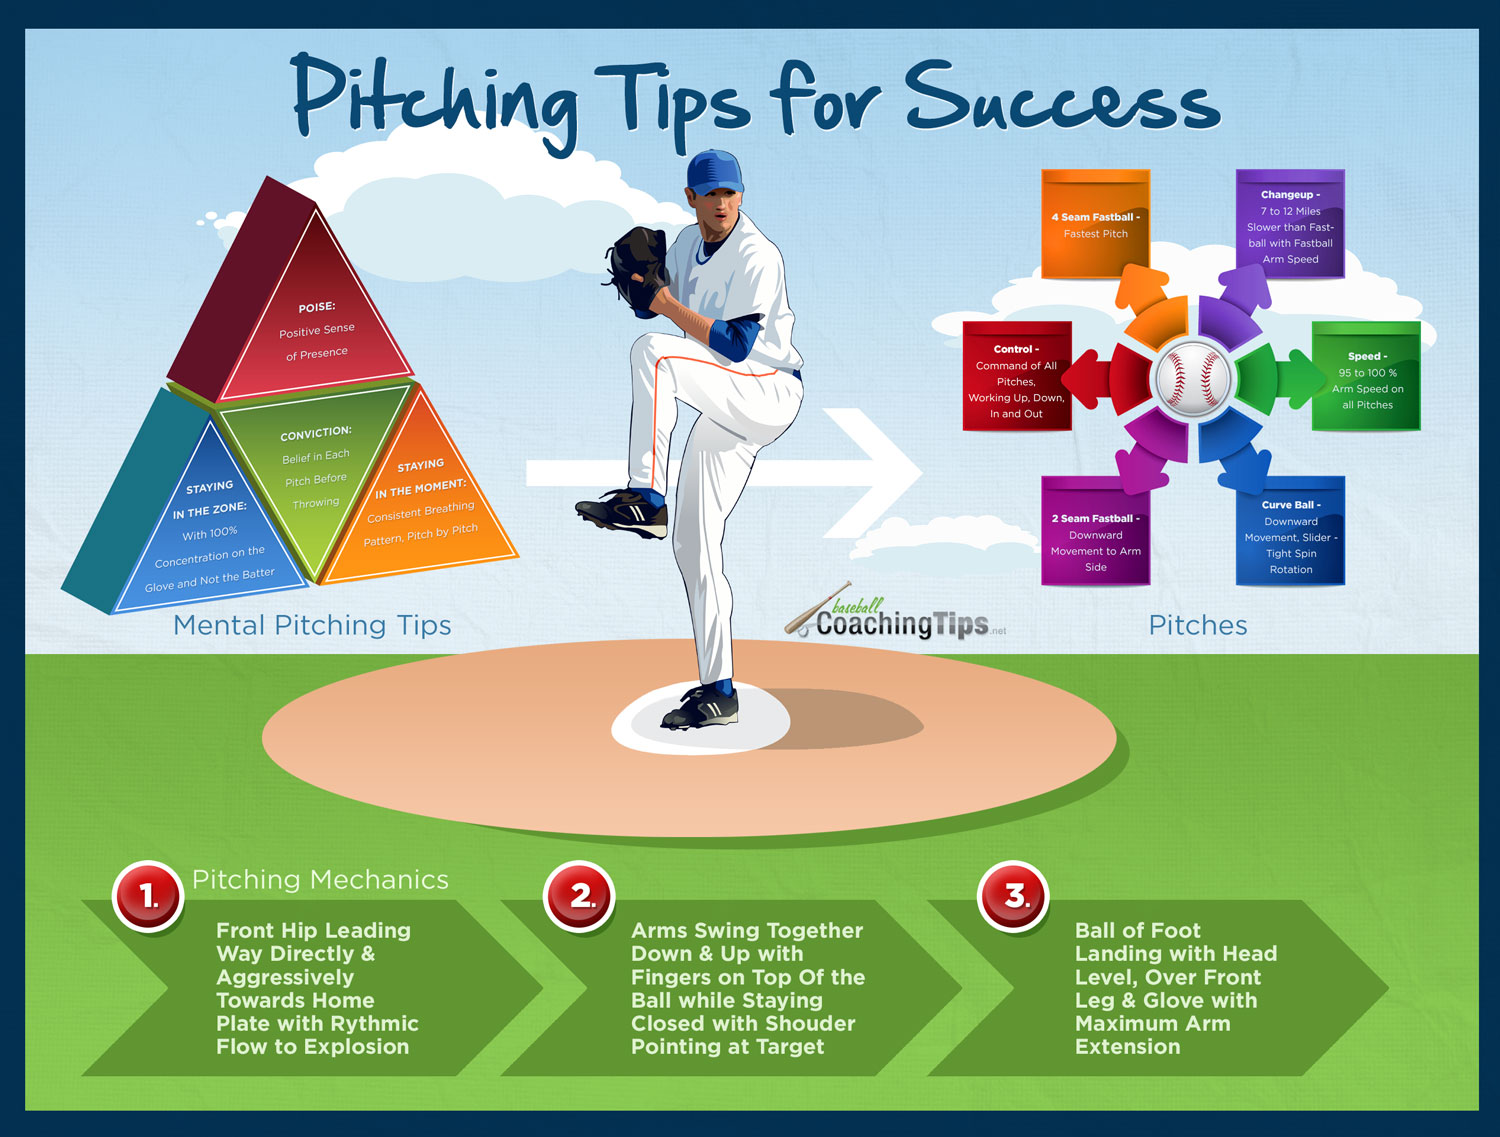 Pitching Tips for Success